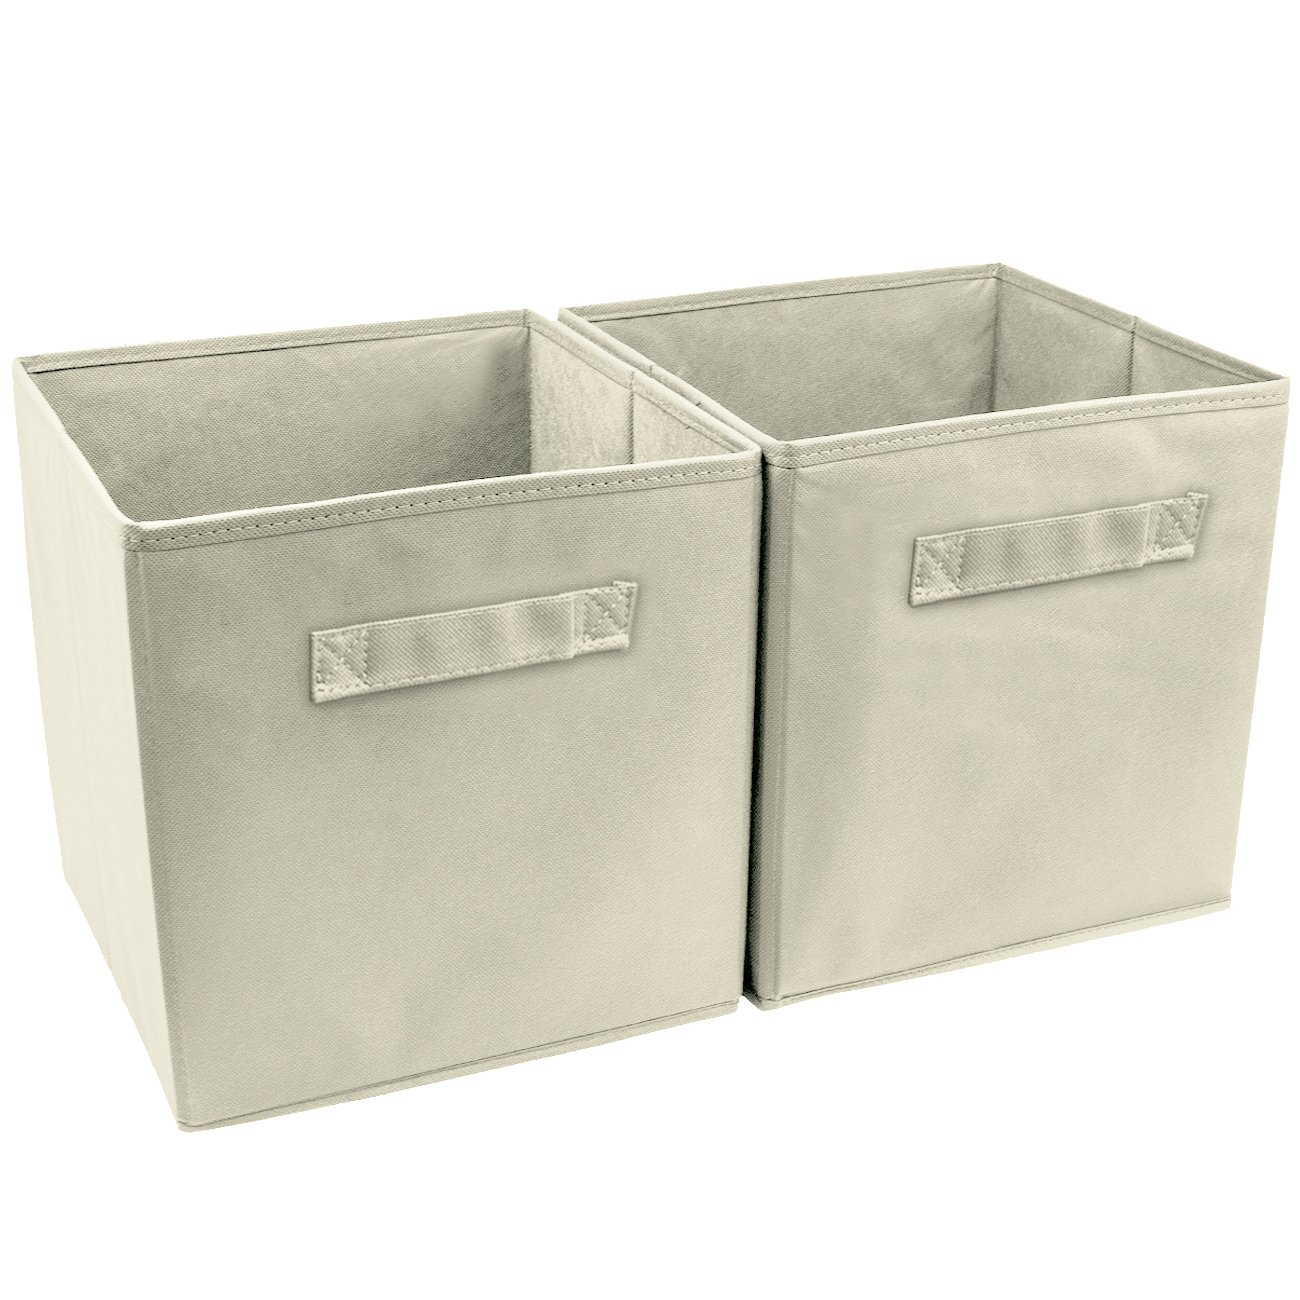 Sorbus Foldable Storage Cube Basket Bin (2 Pack)